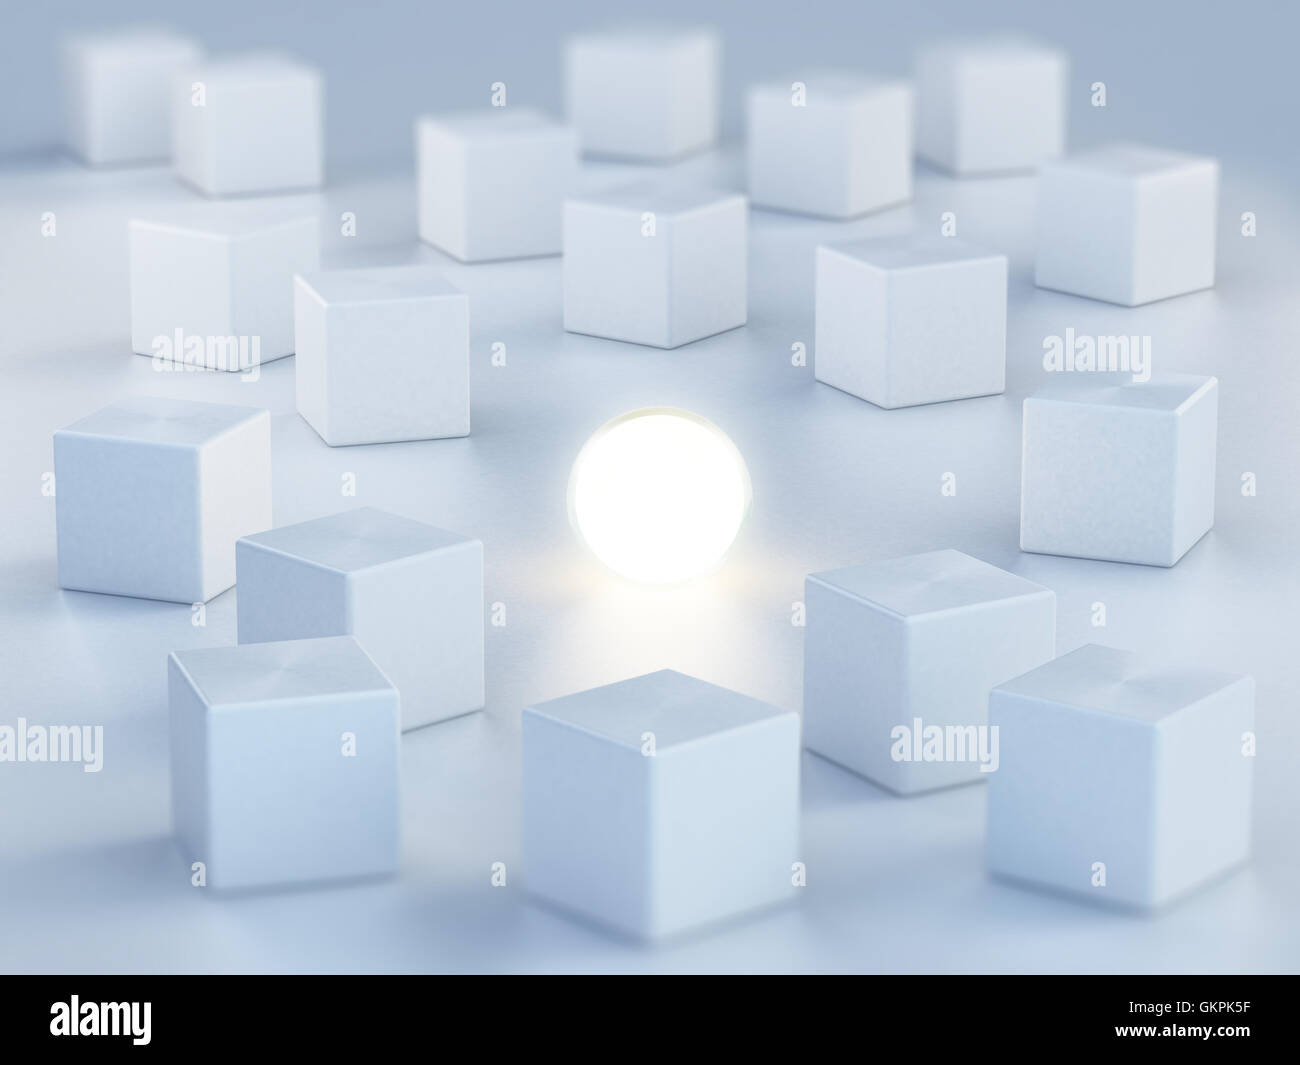 Sphere emitting light standing out among boxes. 3D illustration. - Stock Image